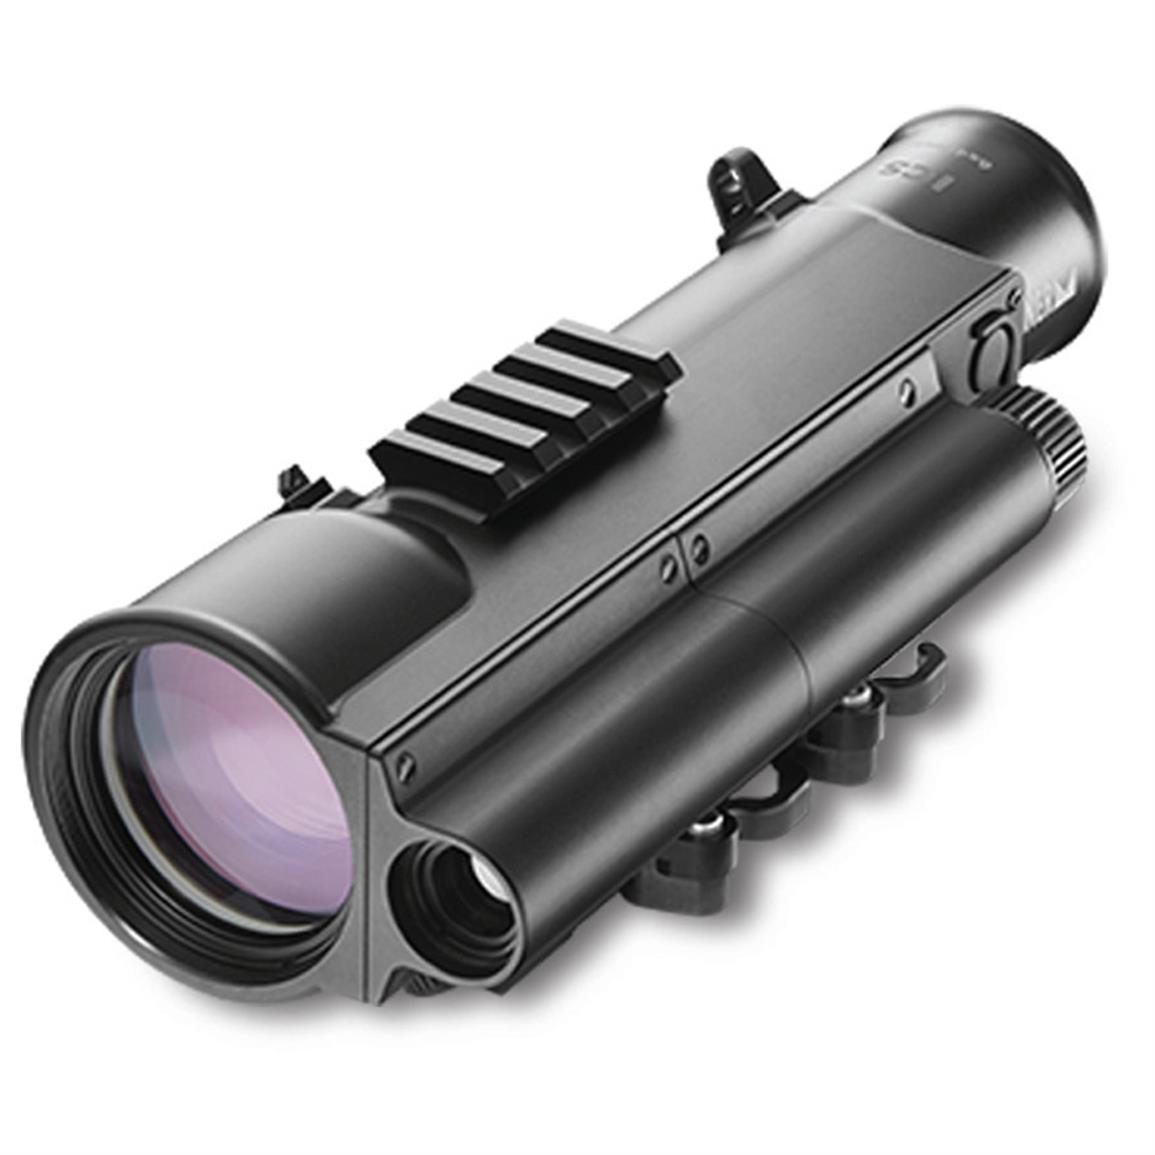 Steiner Intelligent Combat Sight (ICS) 6x40mm